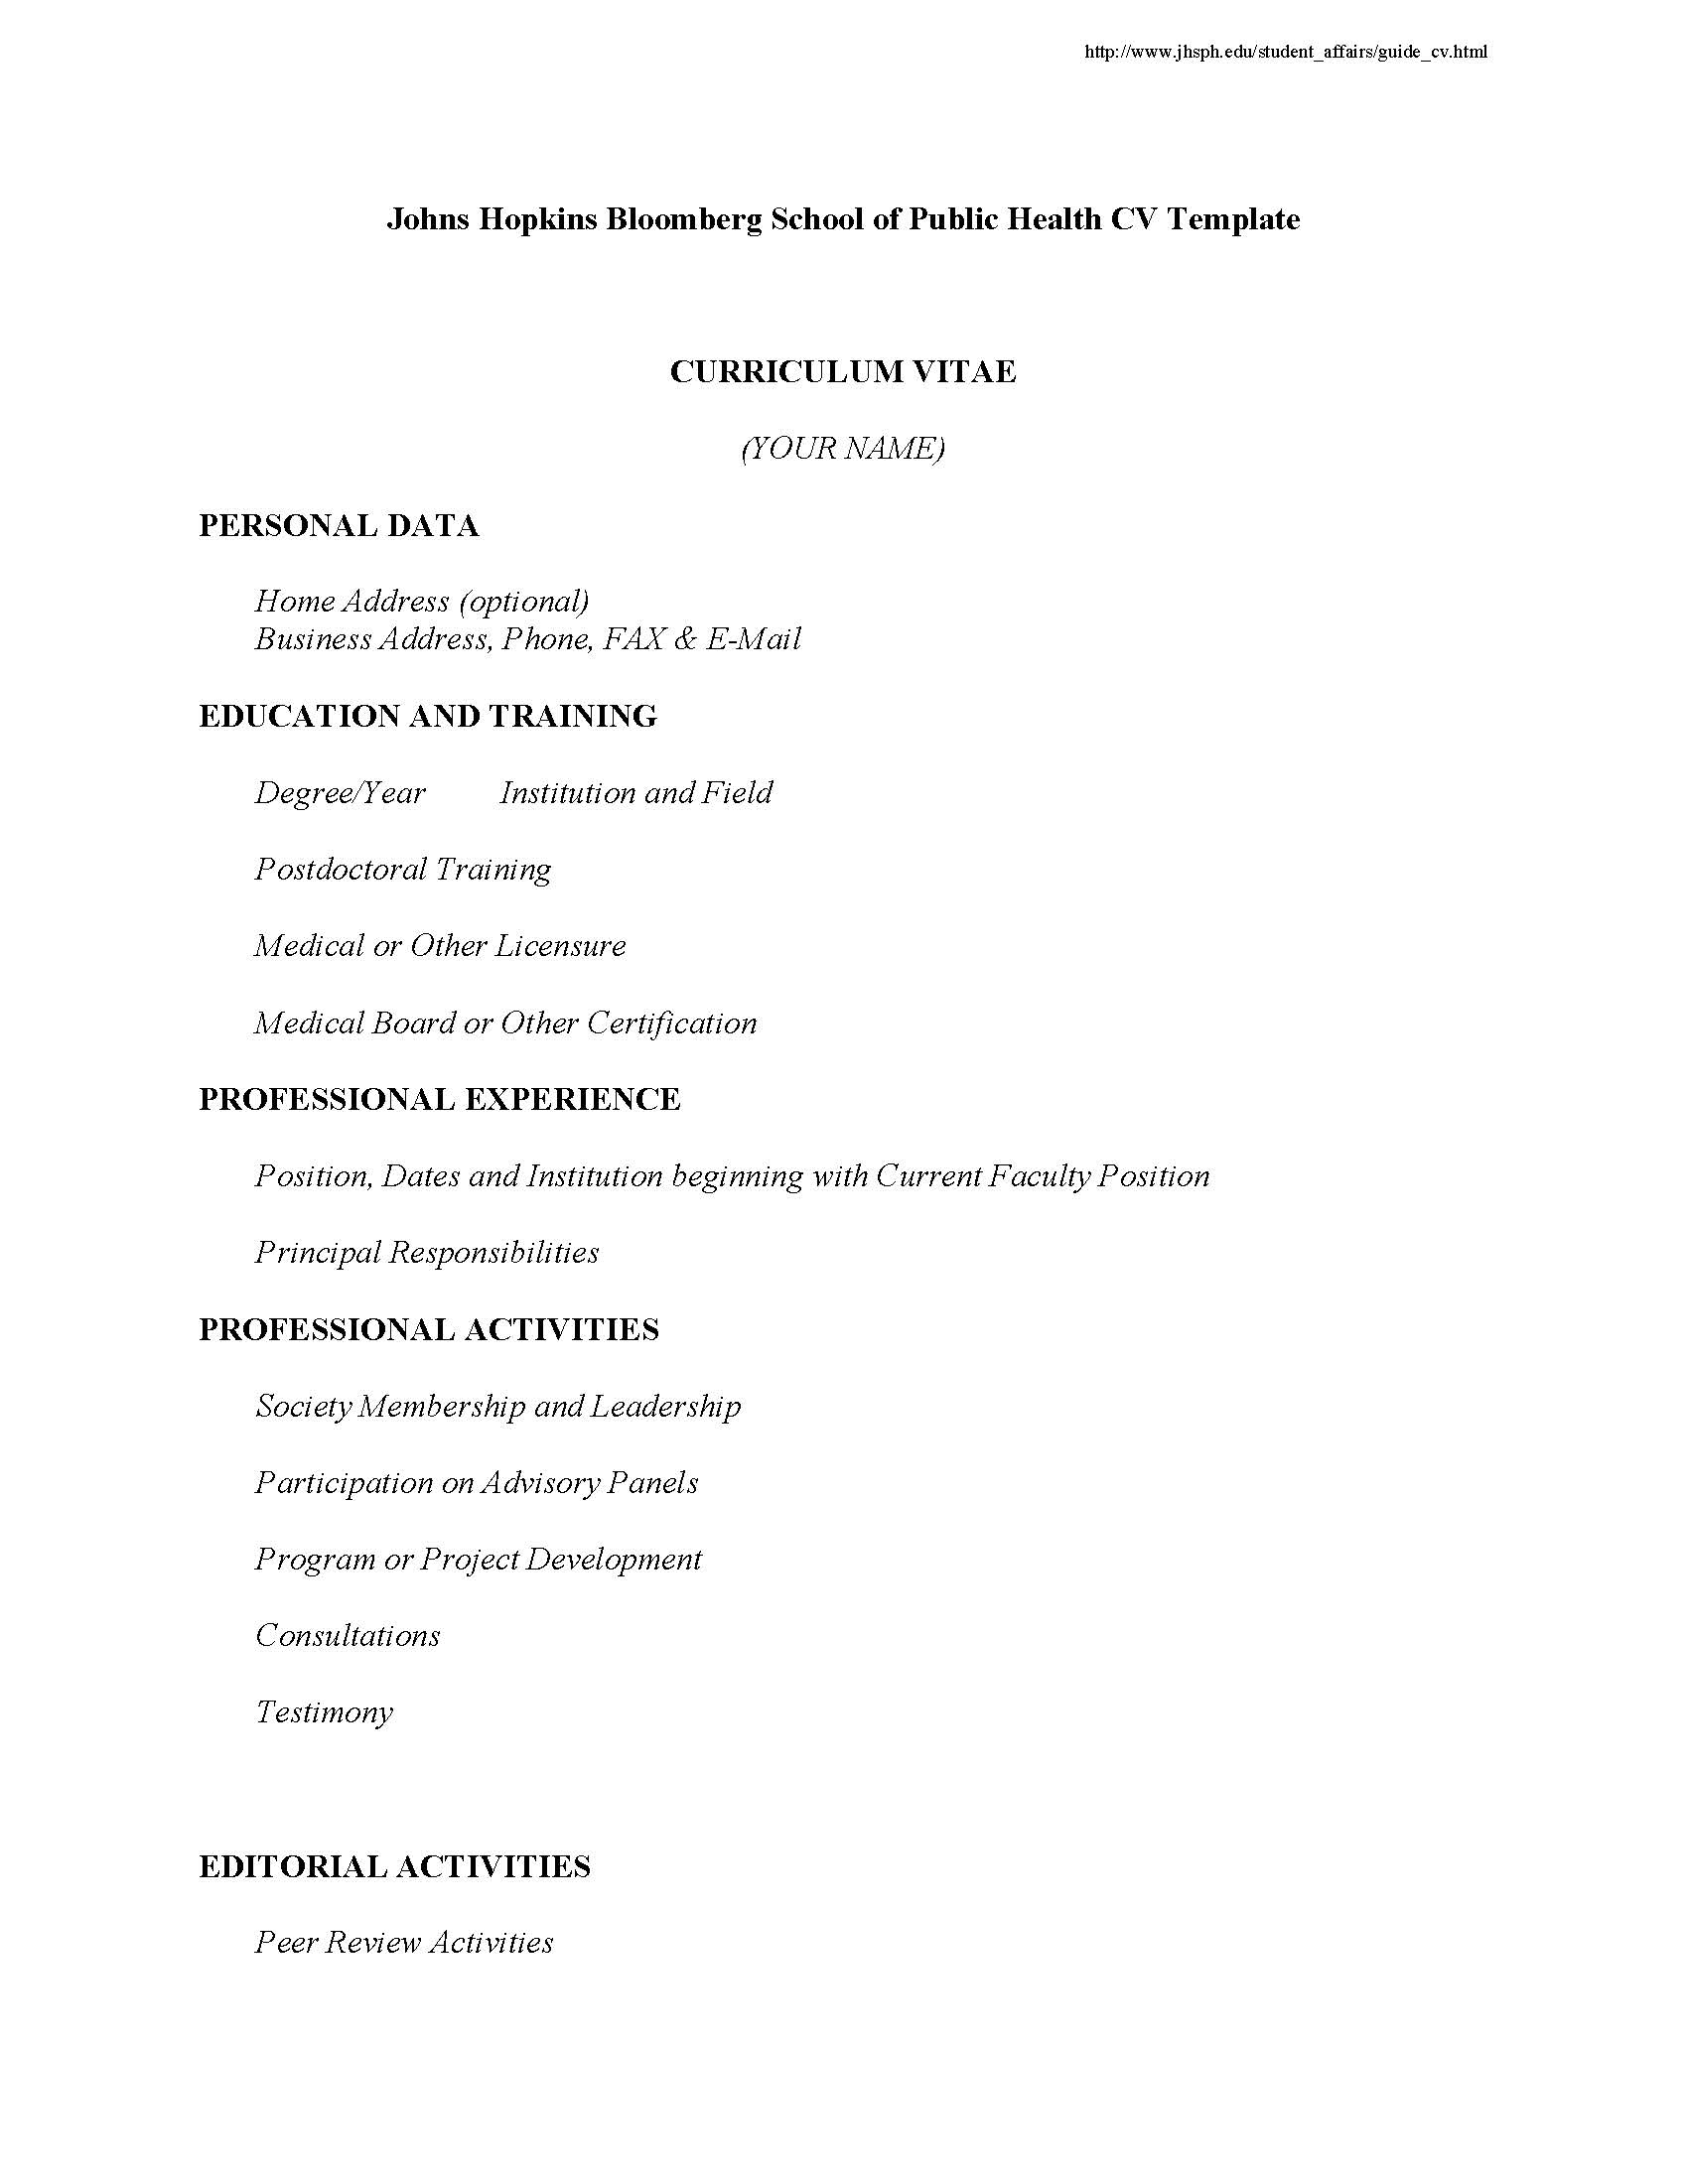 Resumes and cvs career resources for students career jhsph cv template yadclub Image collections